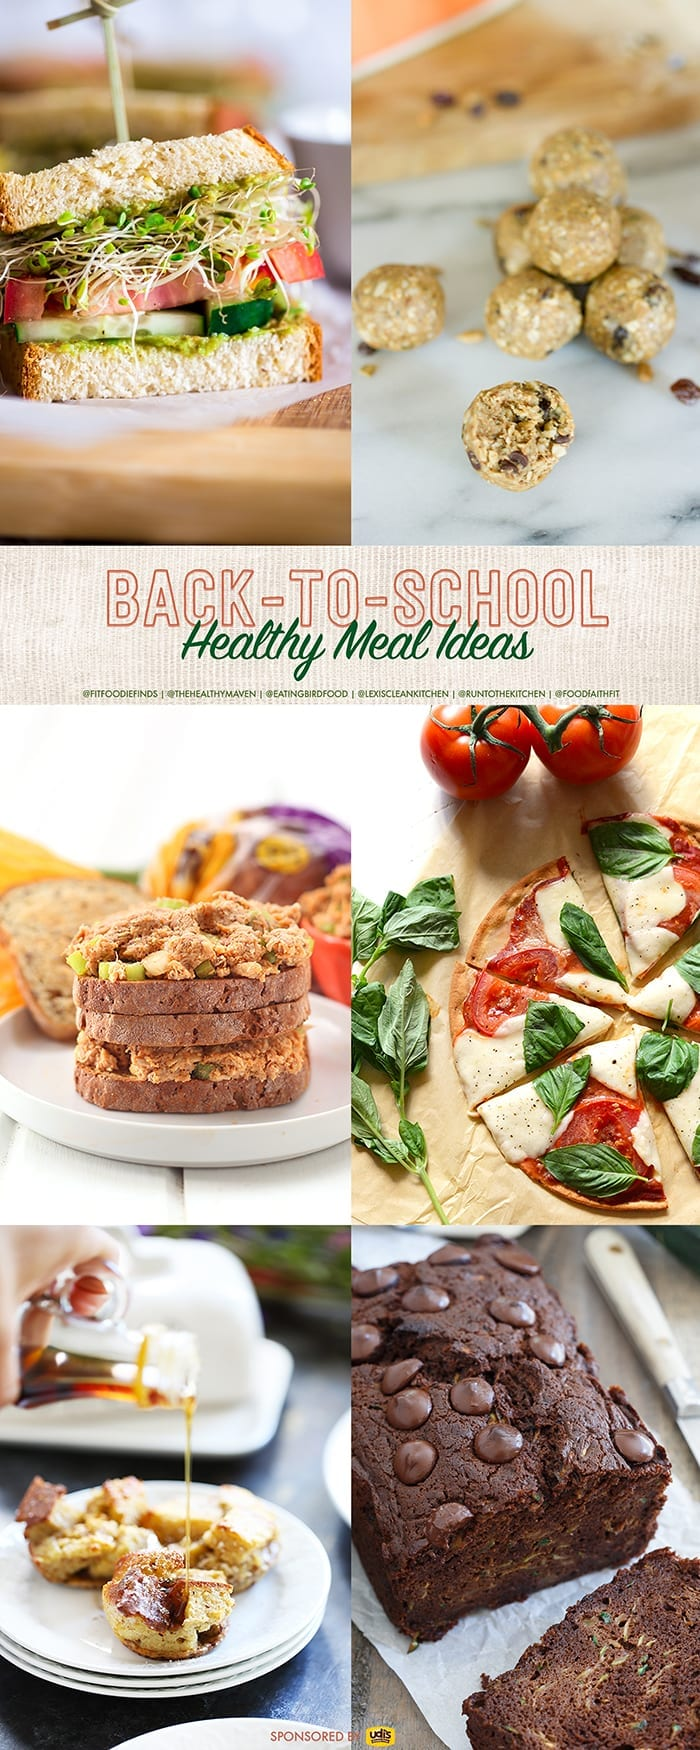 Healthy Back-To-School Meal Ideas for Kiddos and Adults alike! From breakfast, to lunch, to dinner, we've got you covered.